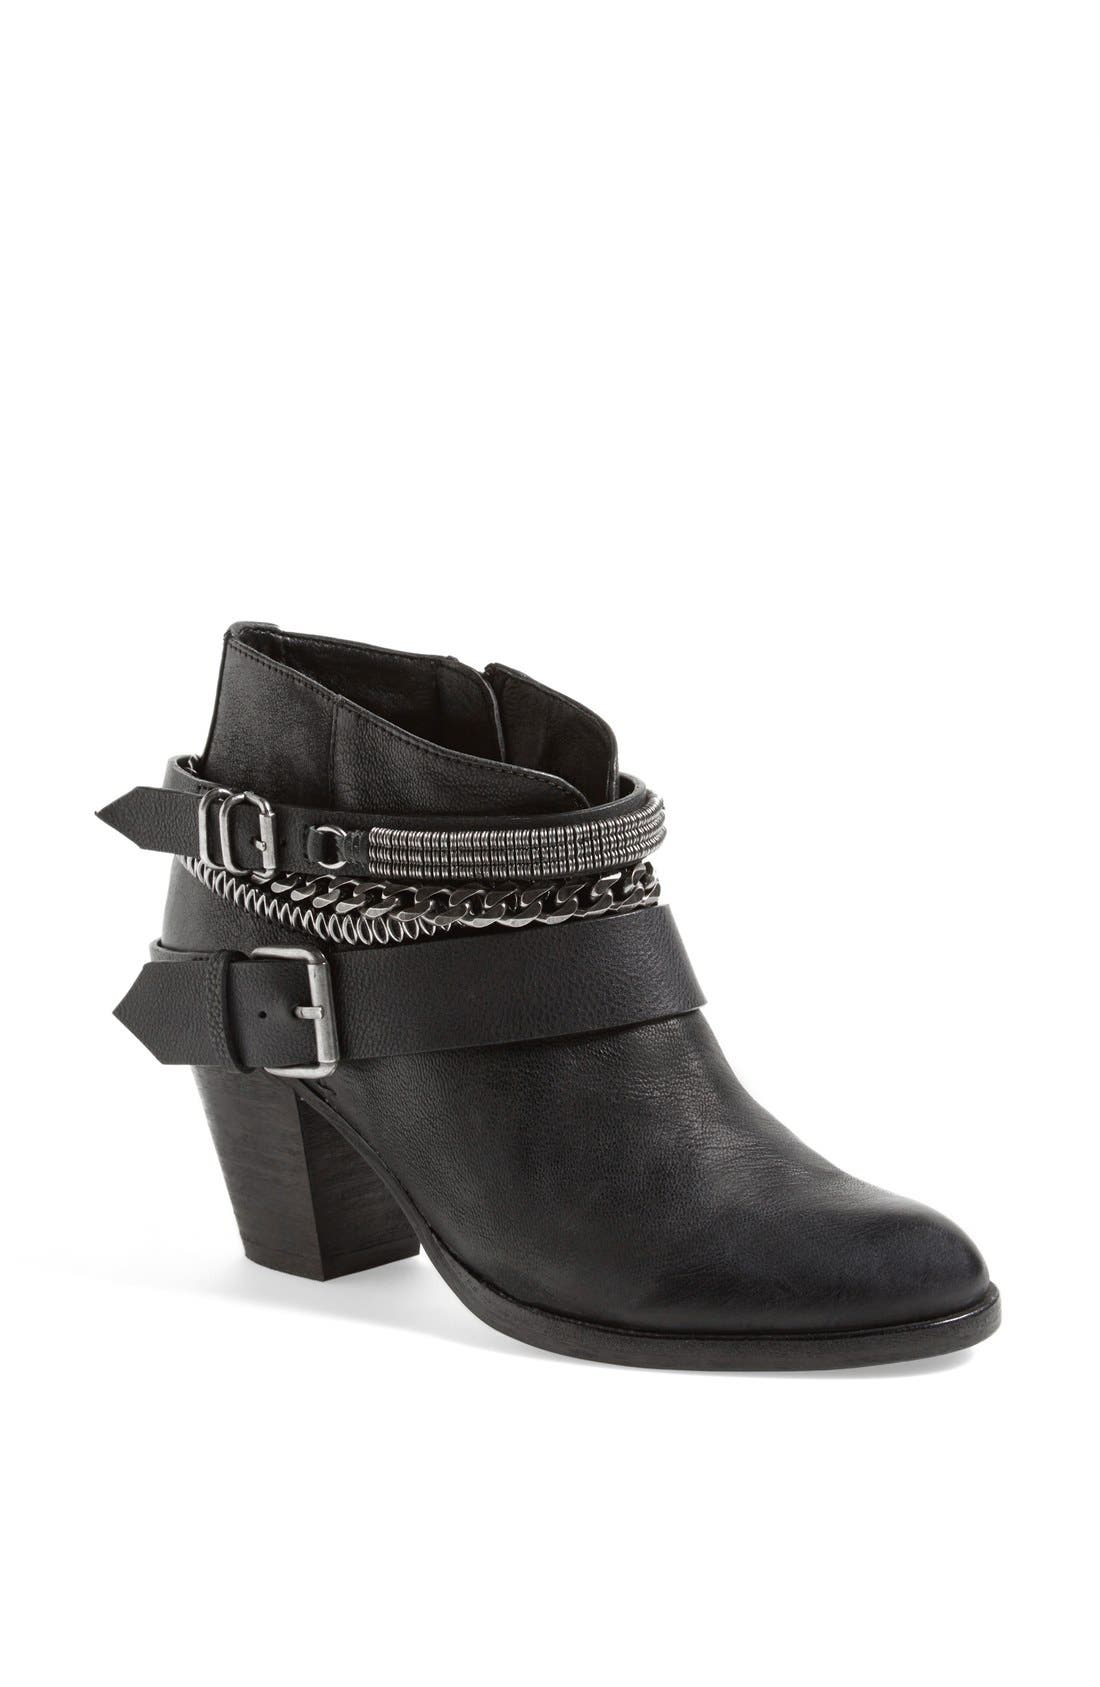 'Yazmina' Leather Bootie,                             Main thumbnail 1, color,                             019